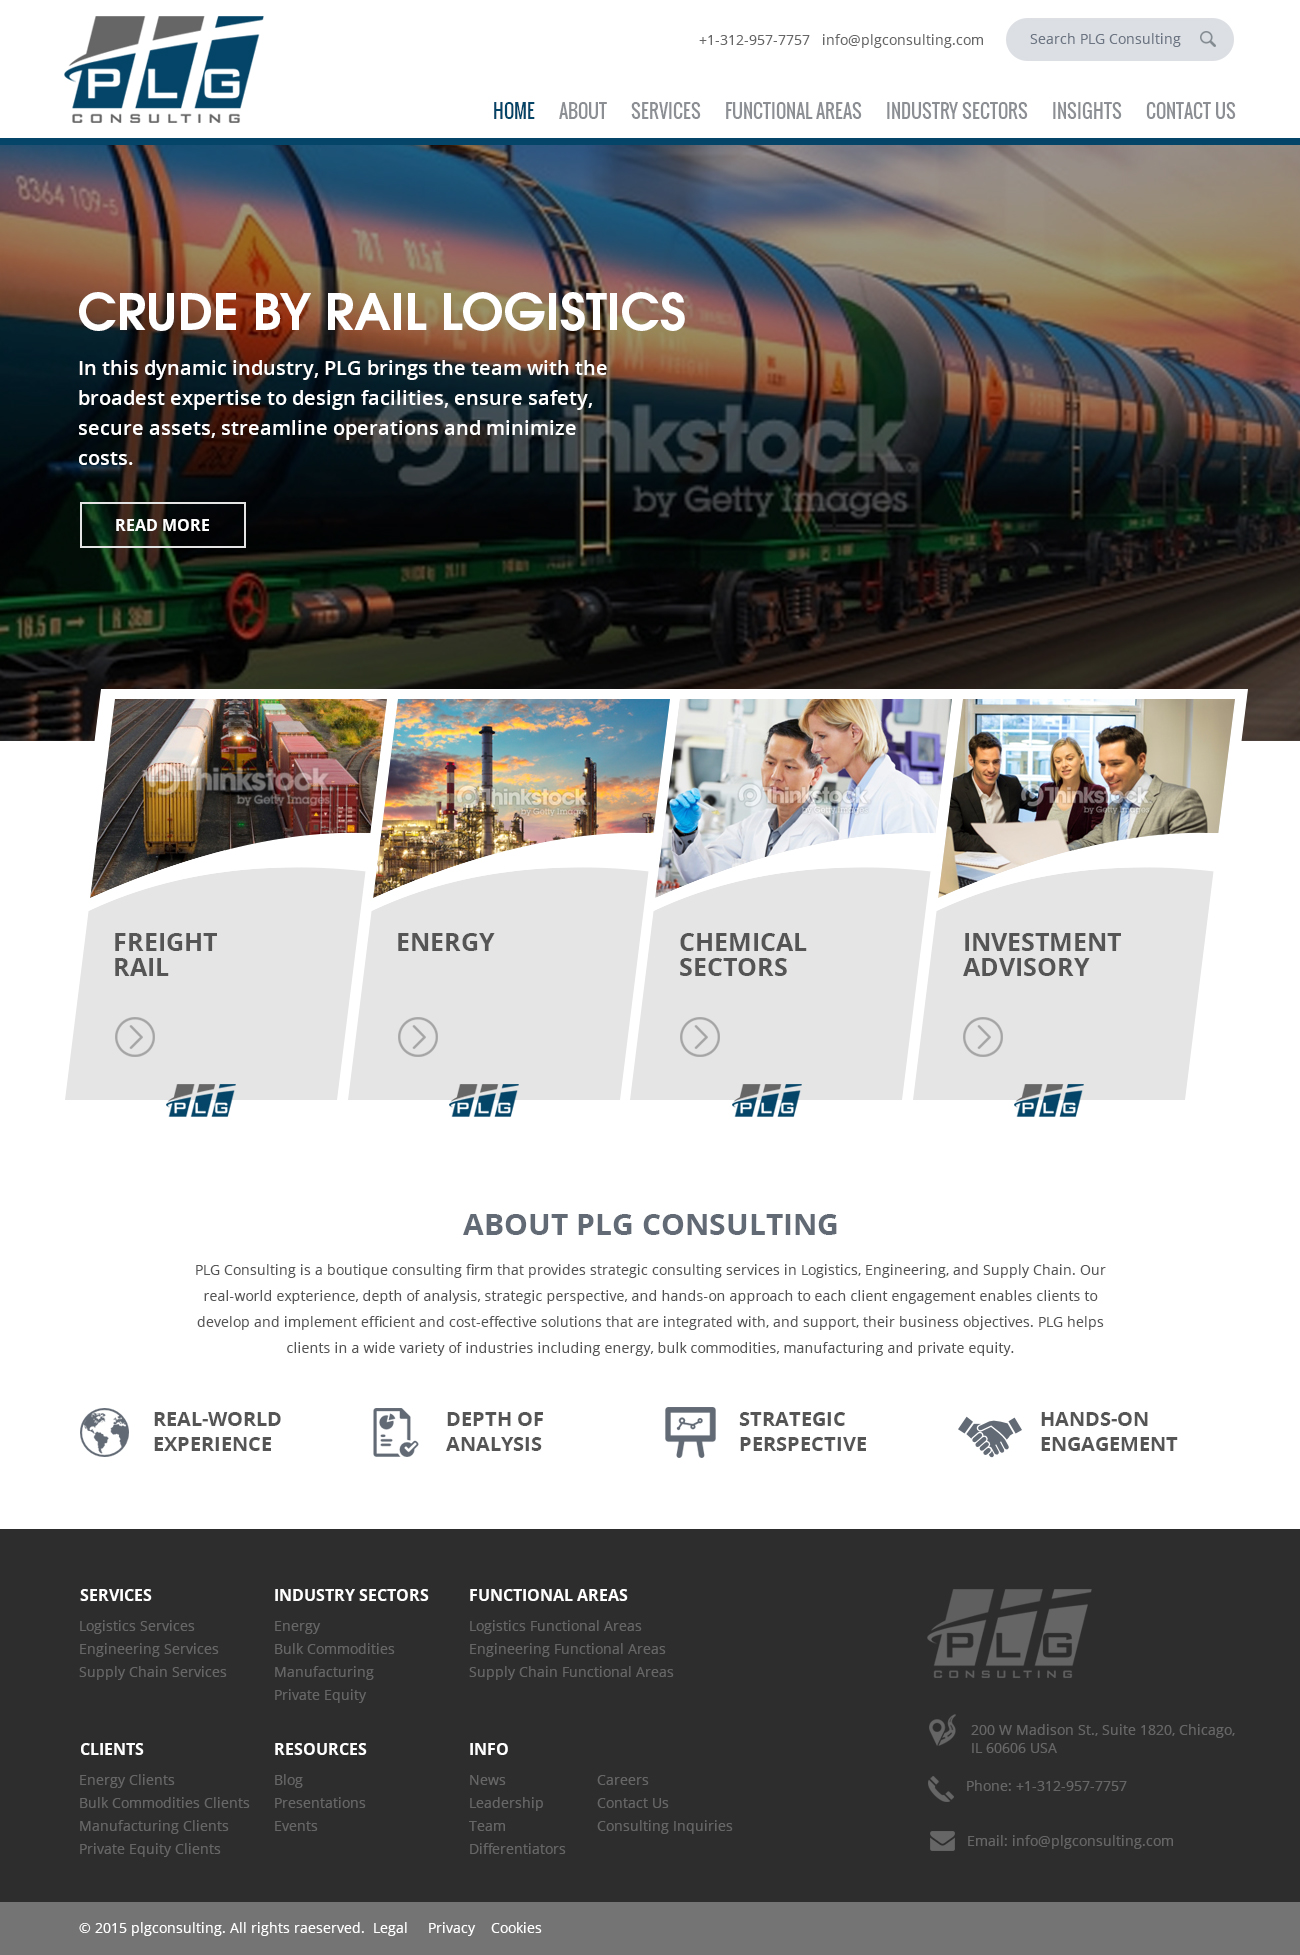 PLG Consulting Website Design - Consulting